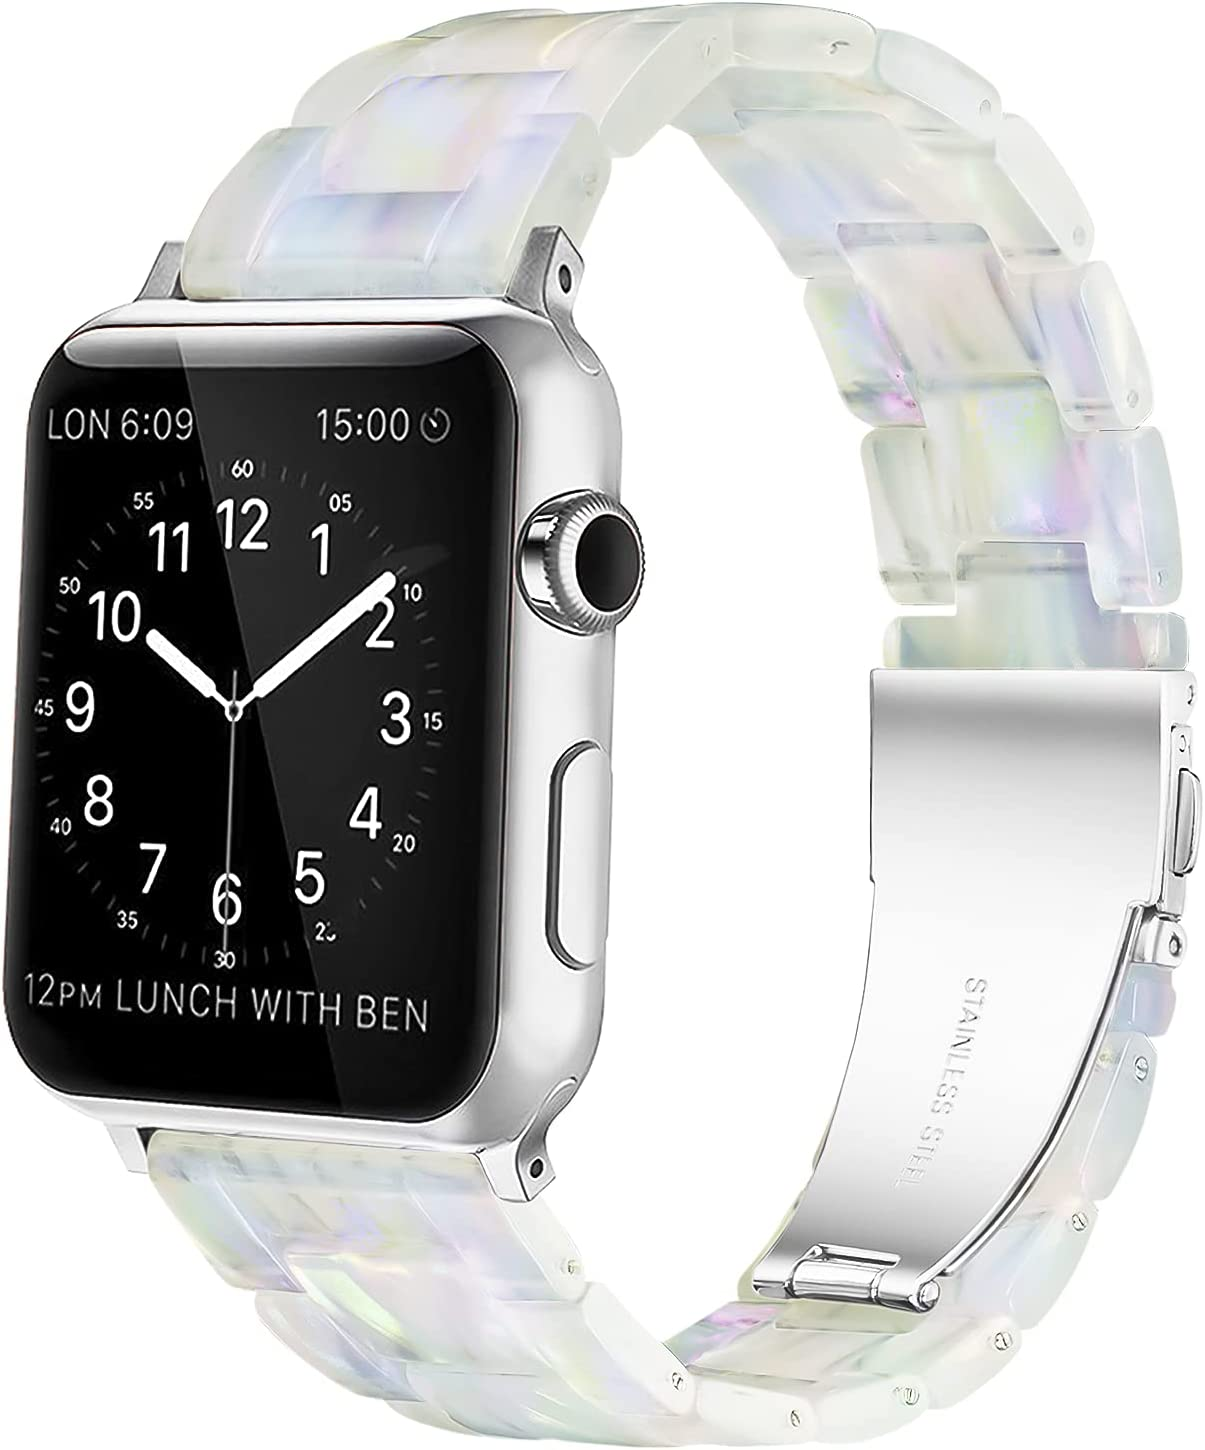 YGTIECS Resin Apple Watch Band Compatible with Apple Watch Band 38mm Women, Combine with Stainless Steel Connector for Apple Watch Band 40mm Series SE 6 5 4 3 2 1 for Women and Men- Phantom Pearl